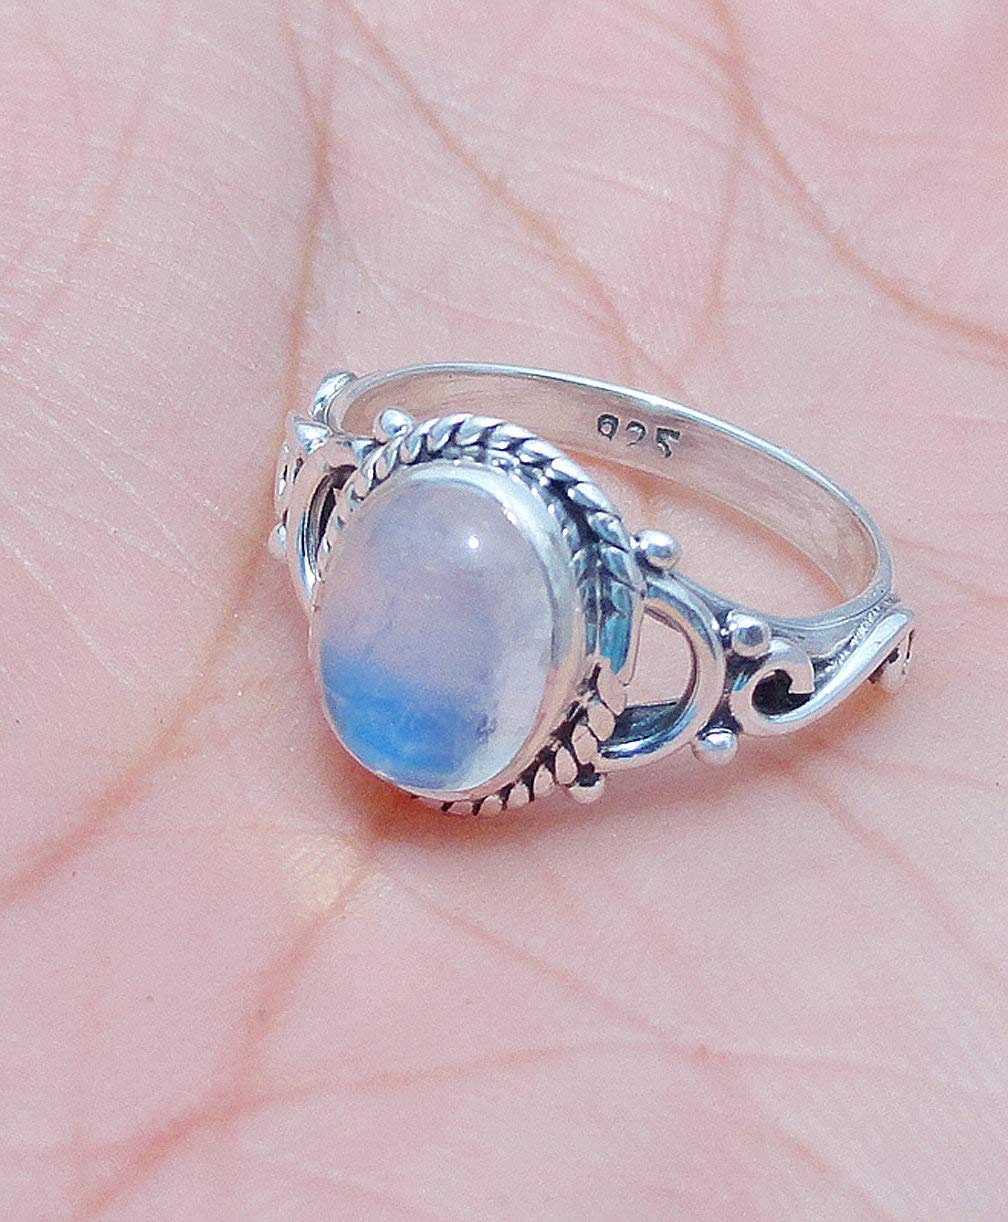 Solitaire Ring 925 Sterling Silver Oval Rainbow Moonstone Boho Handmade Jewelry for Women Size 9